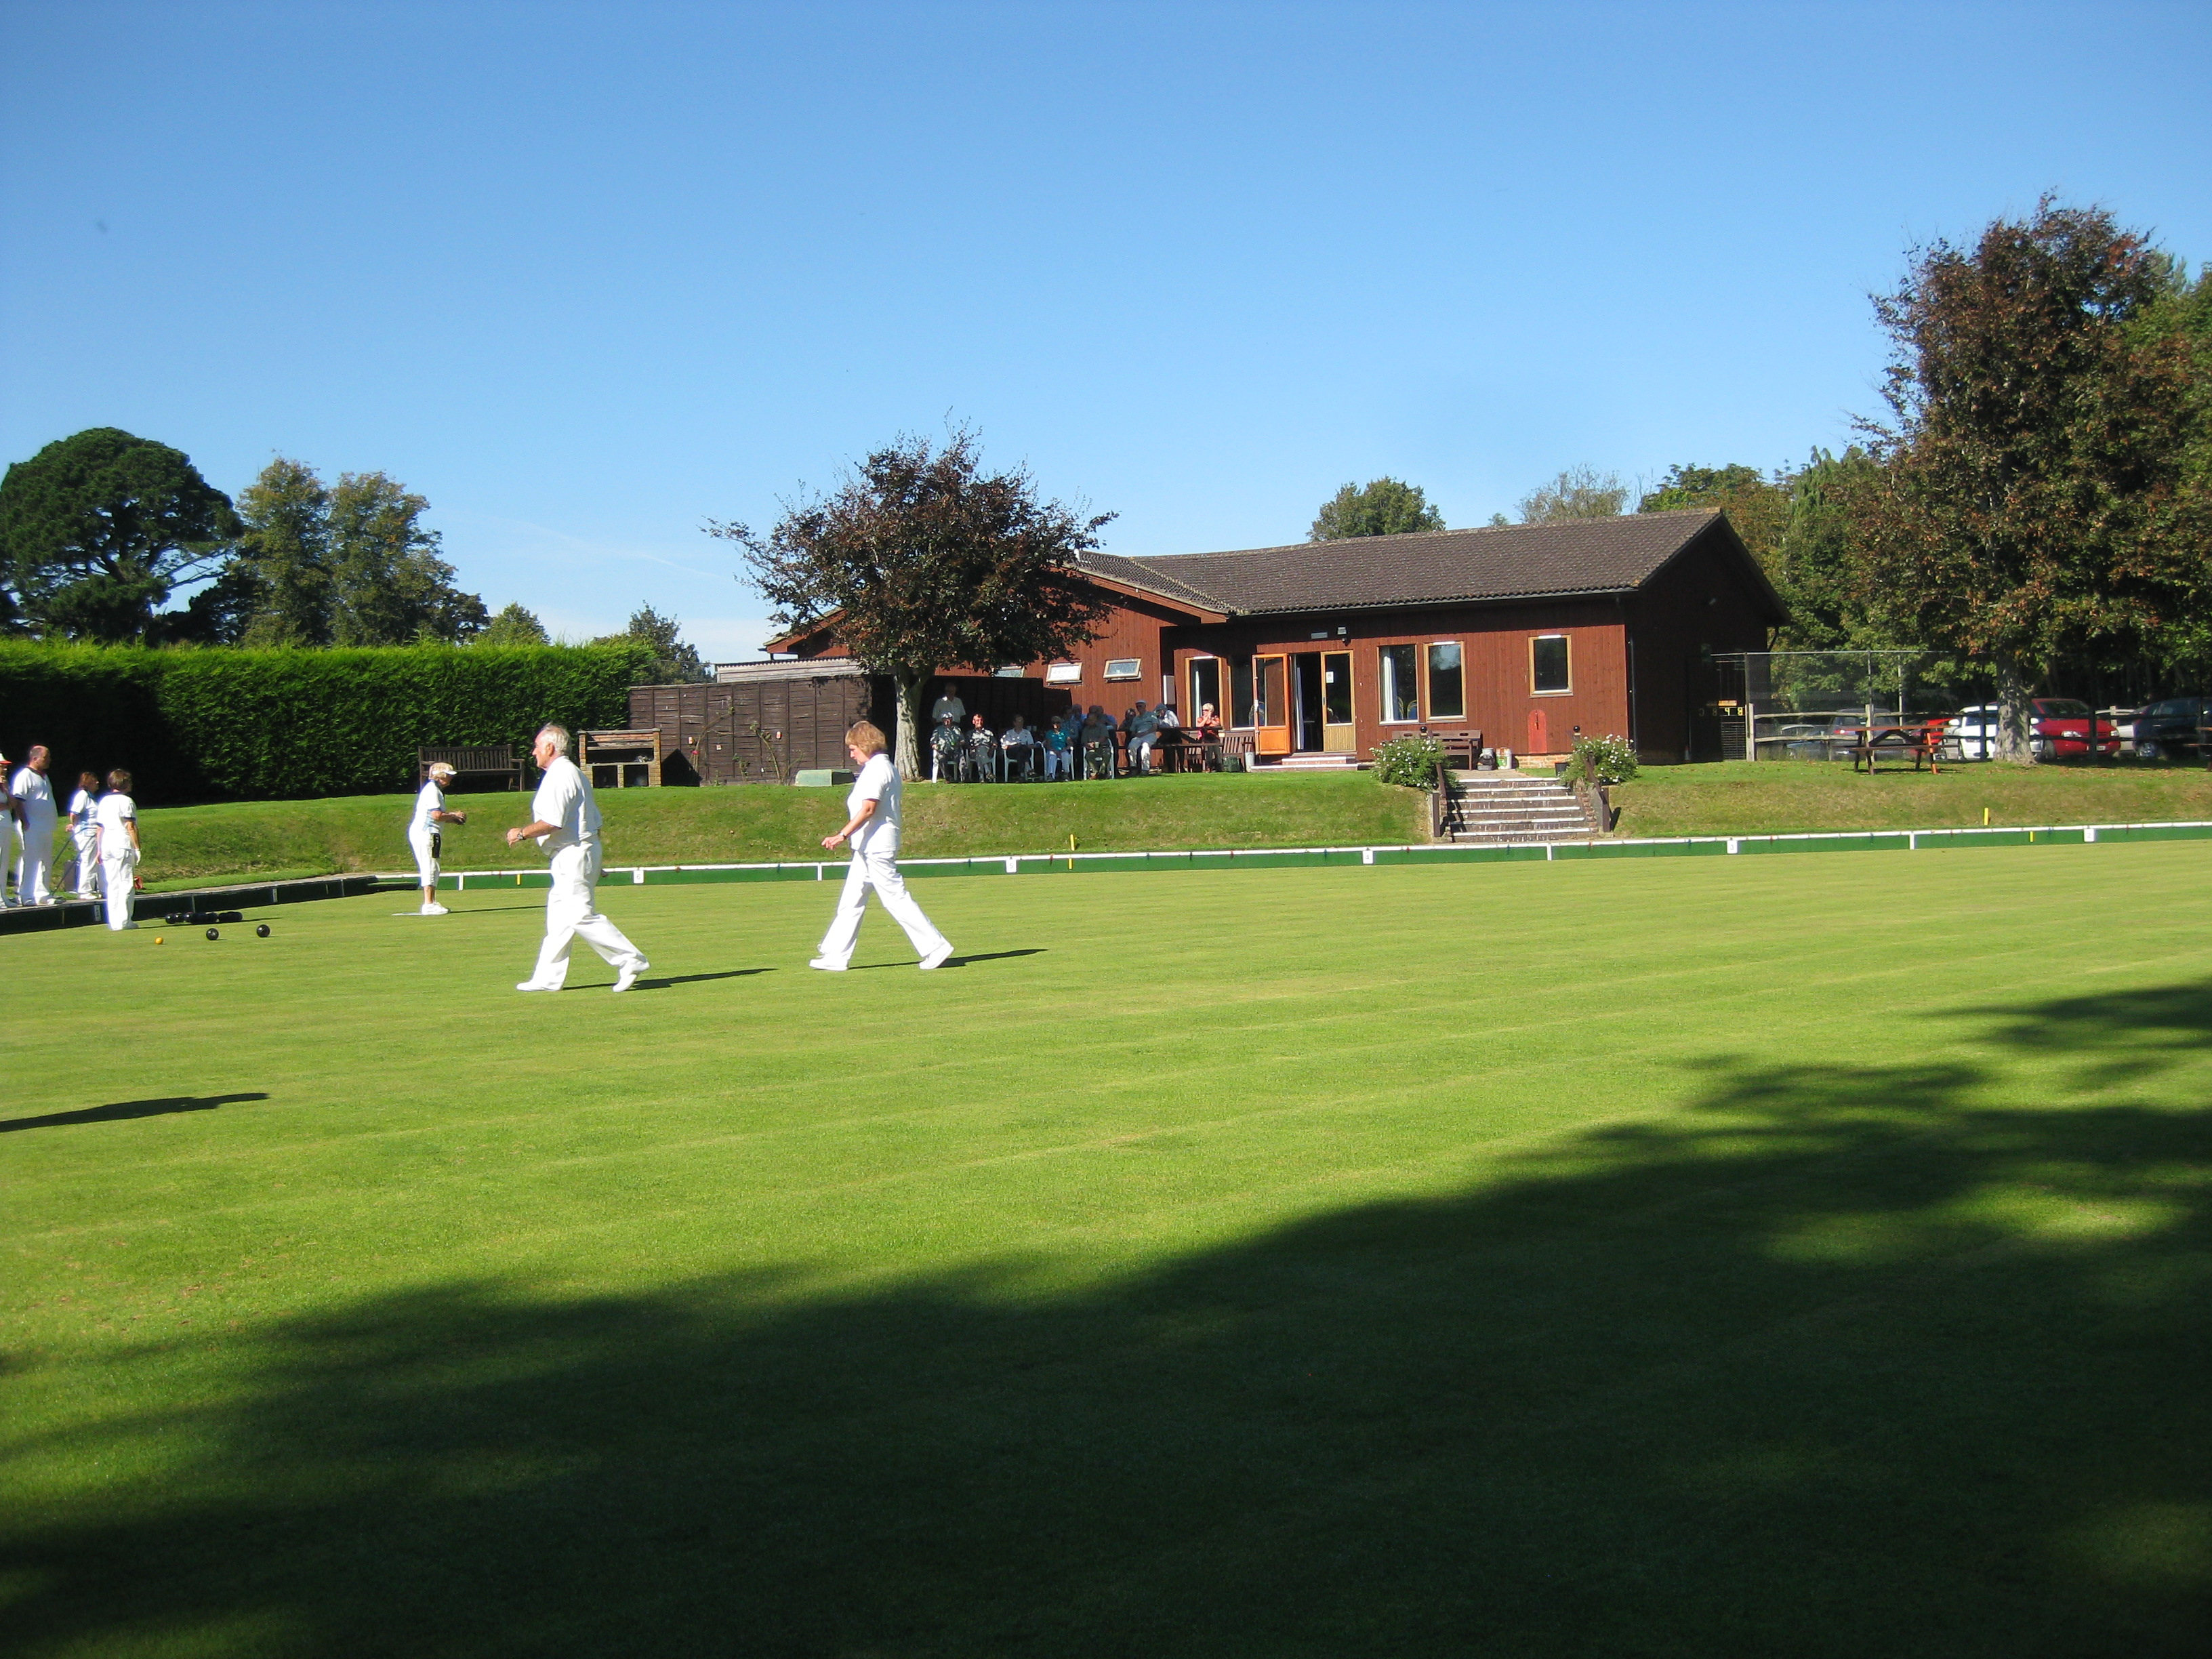 Bowls Game being played at BuxtedPark